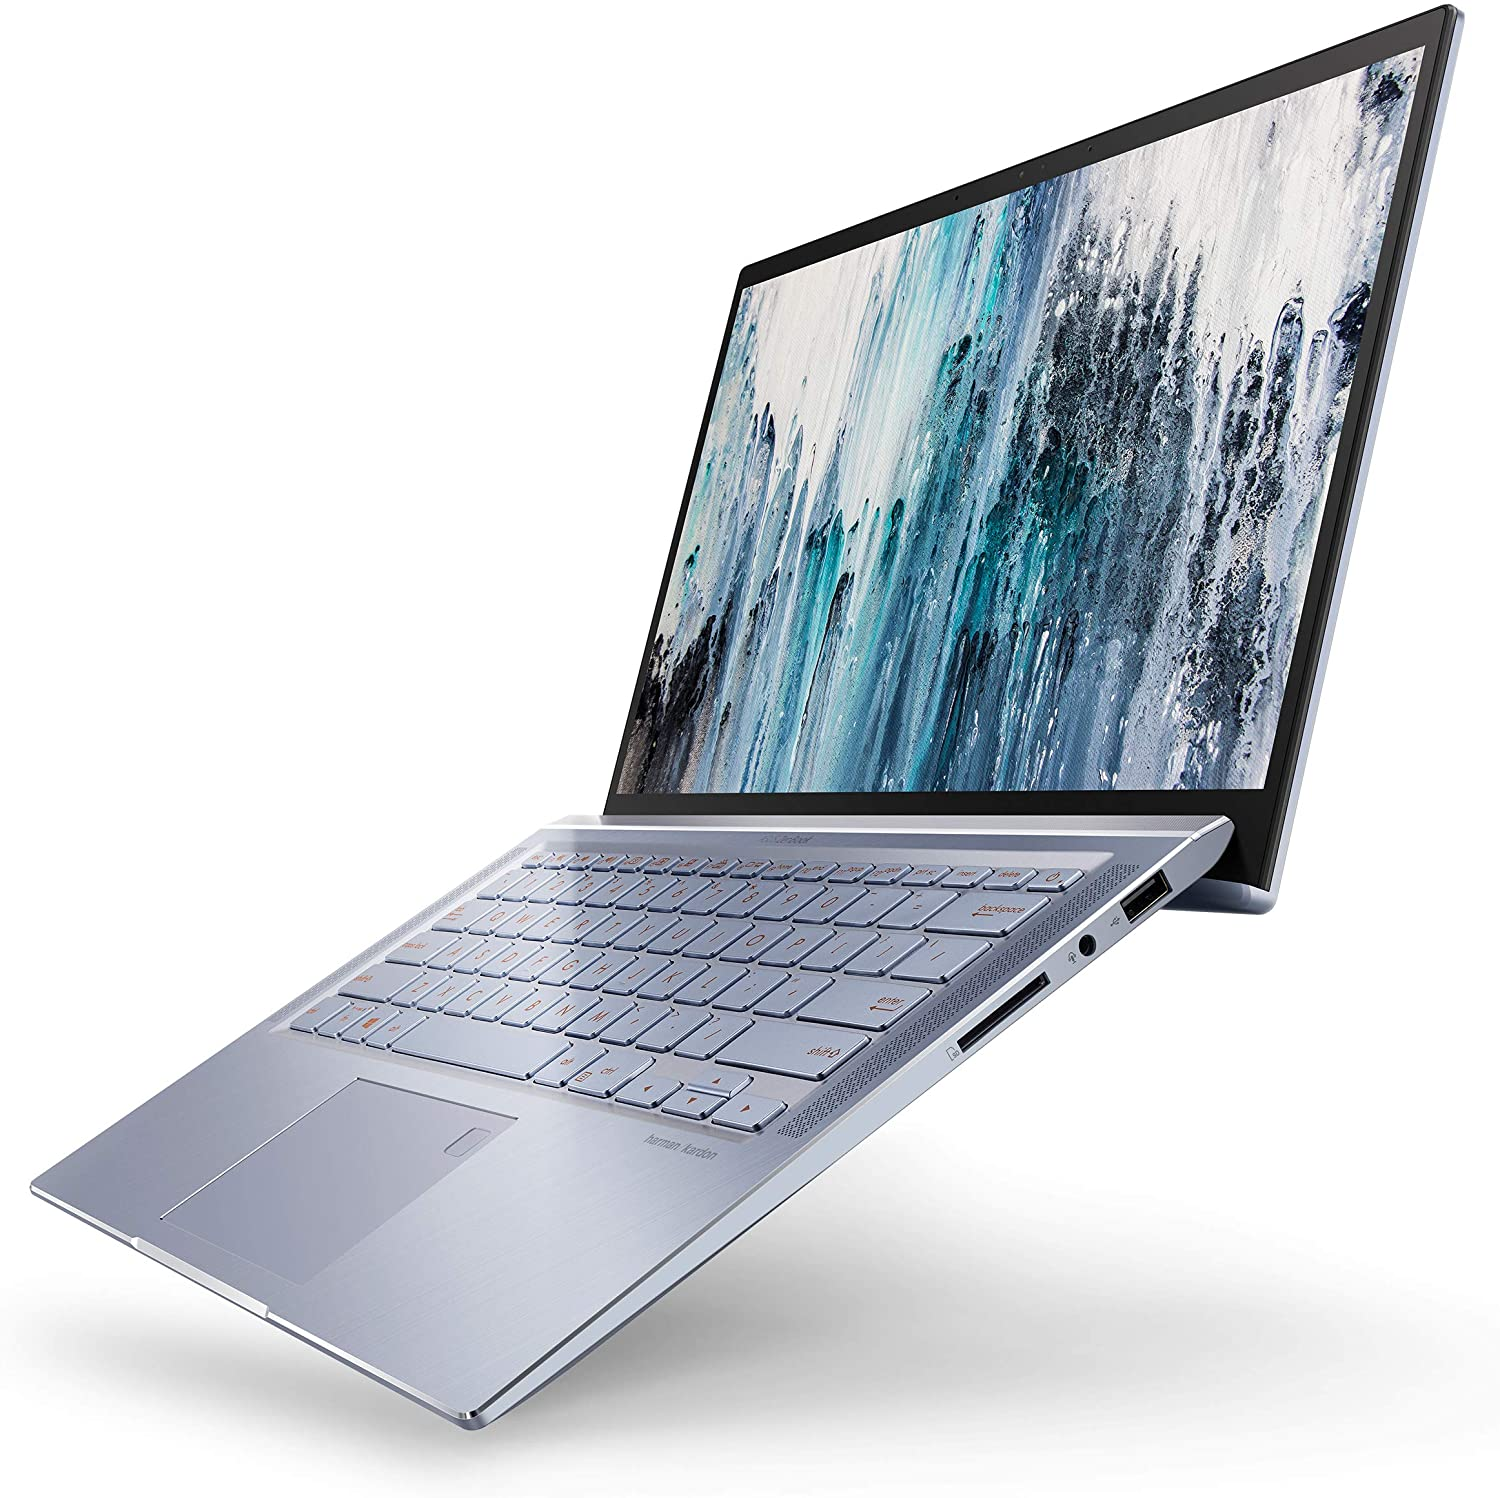 The Asus Zenbook 14 travel product recommended by Dale Johnson on Lifney.